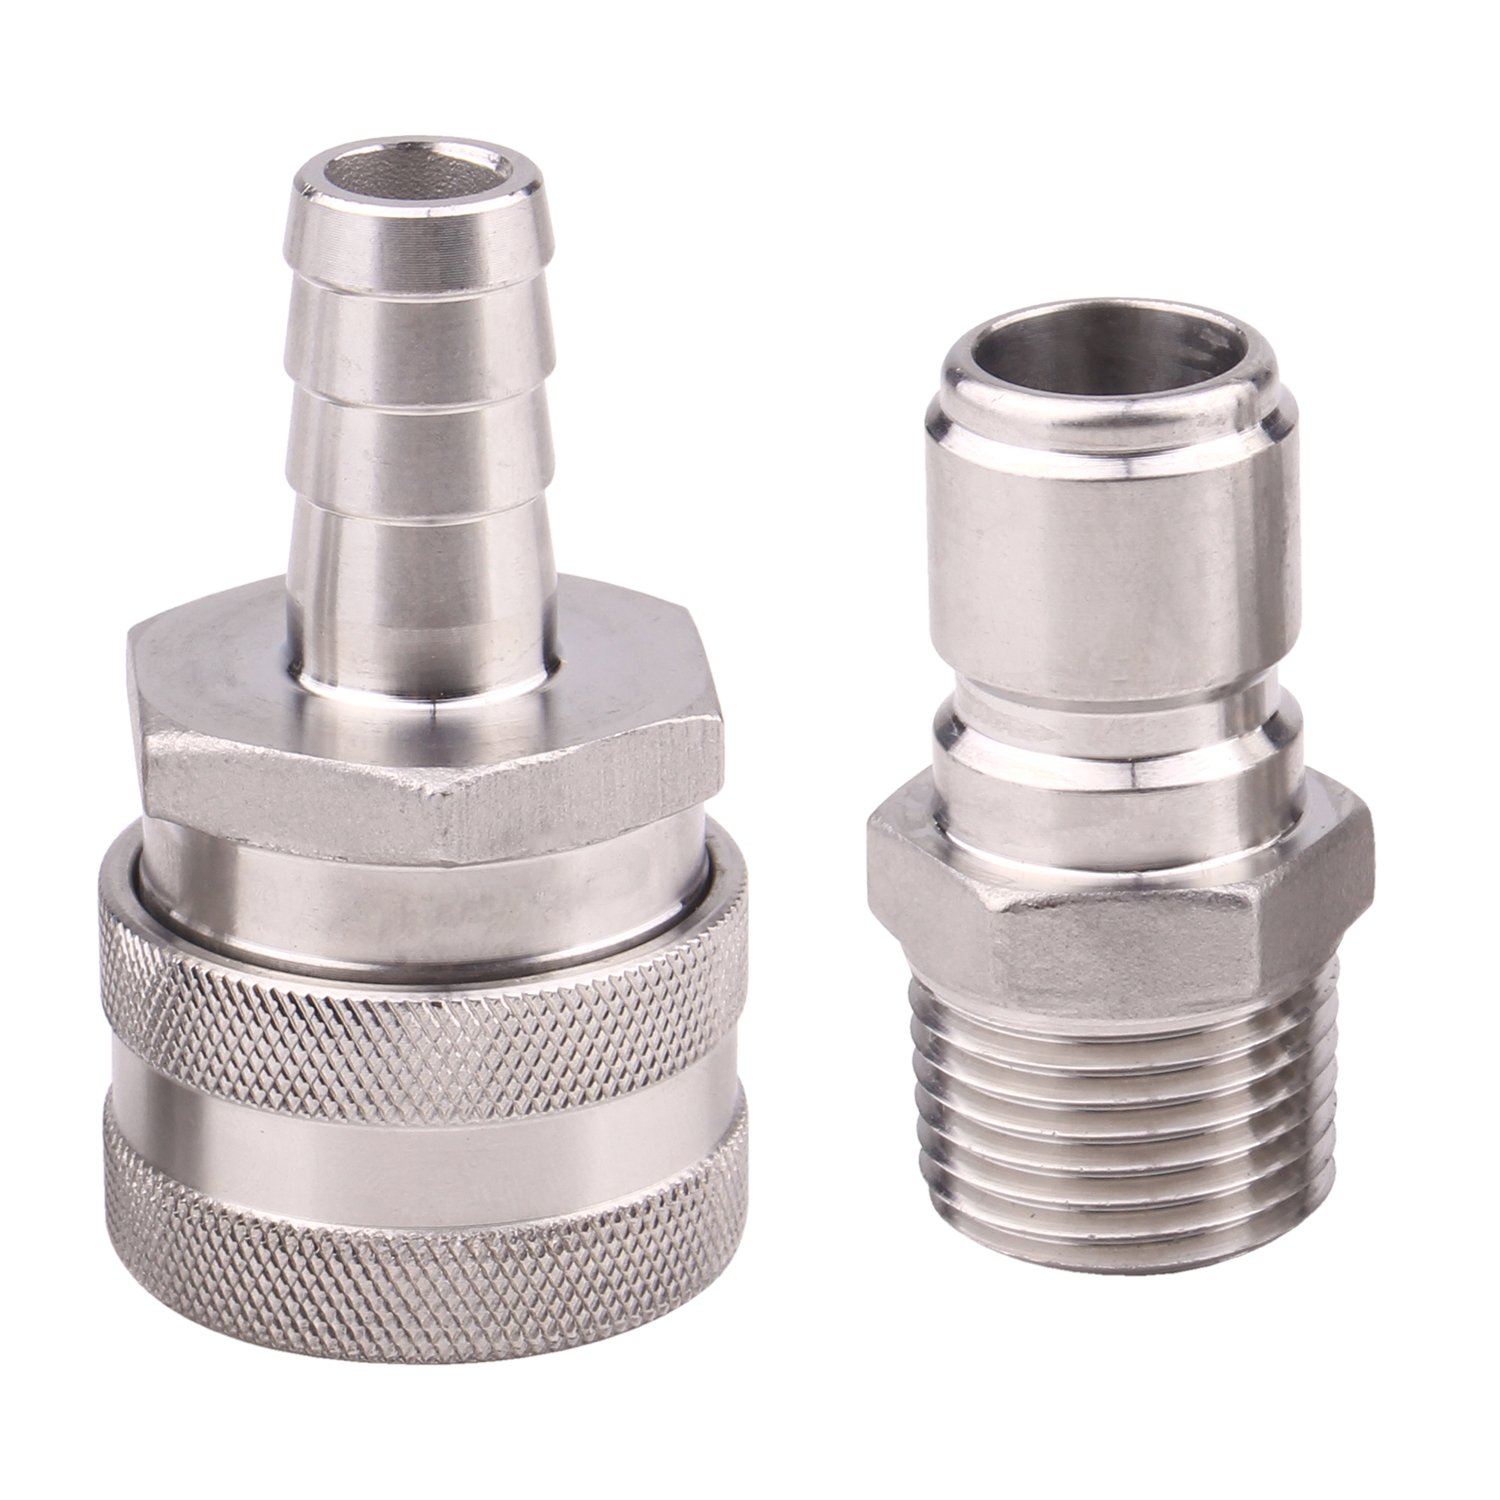 Dernord Stainless Steel Quick Disconnect Set - Beer Brewing Connector Kit (Barb Female/MPT Male)